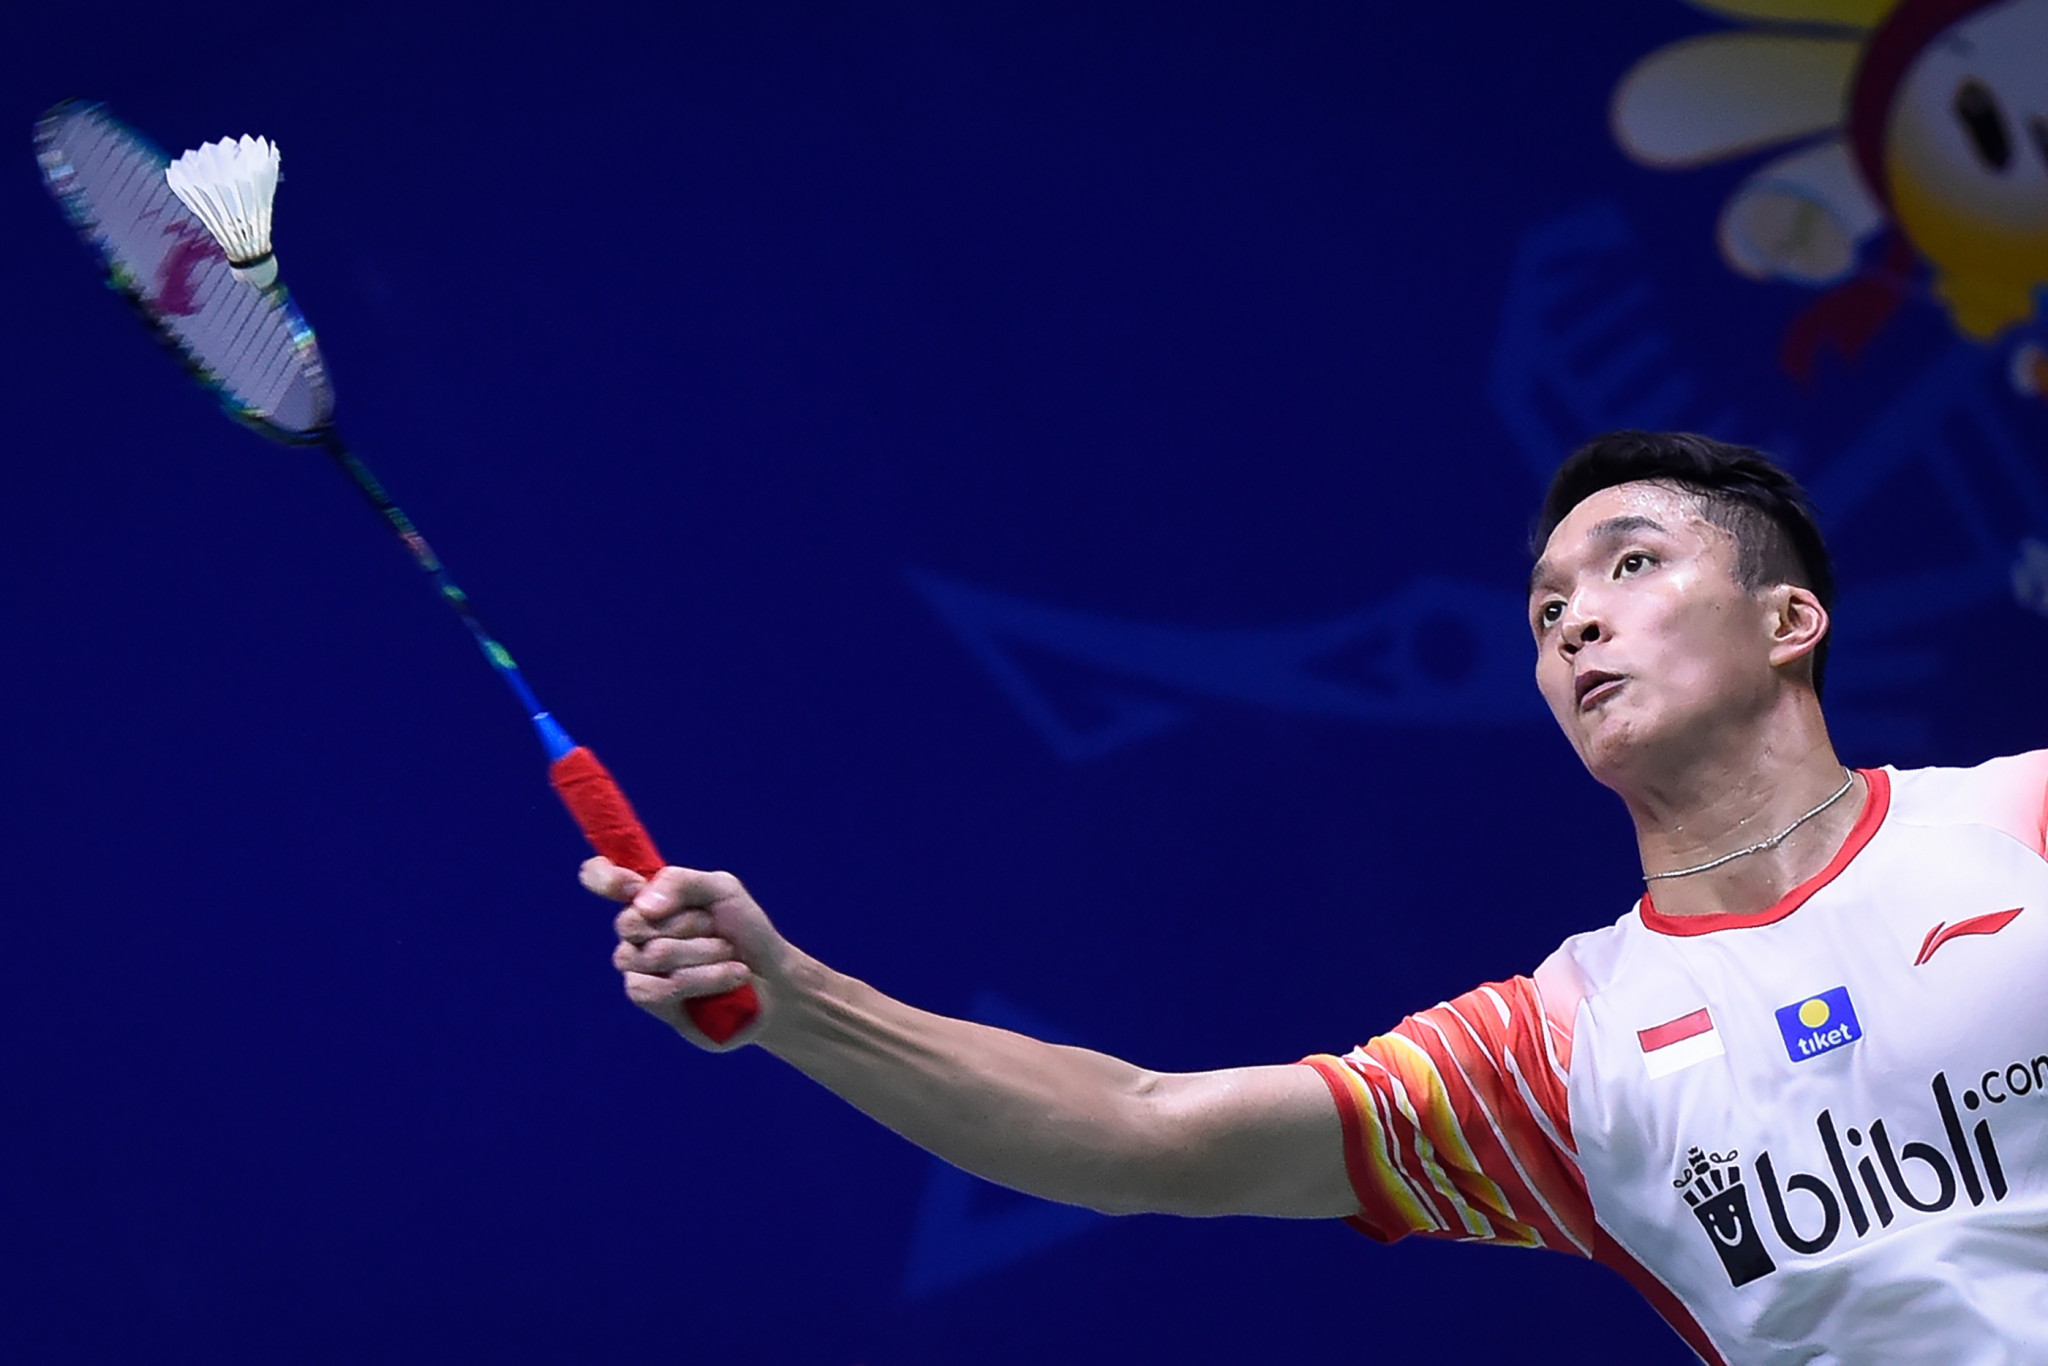 Christie stuns Chou at BWF Australian Open as top seeds reach women's singles final